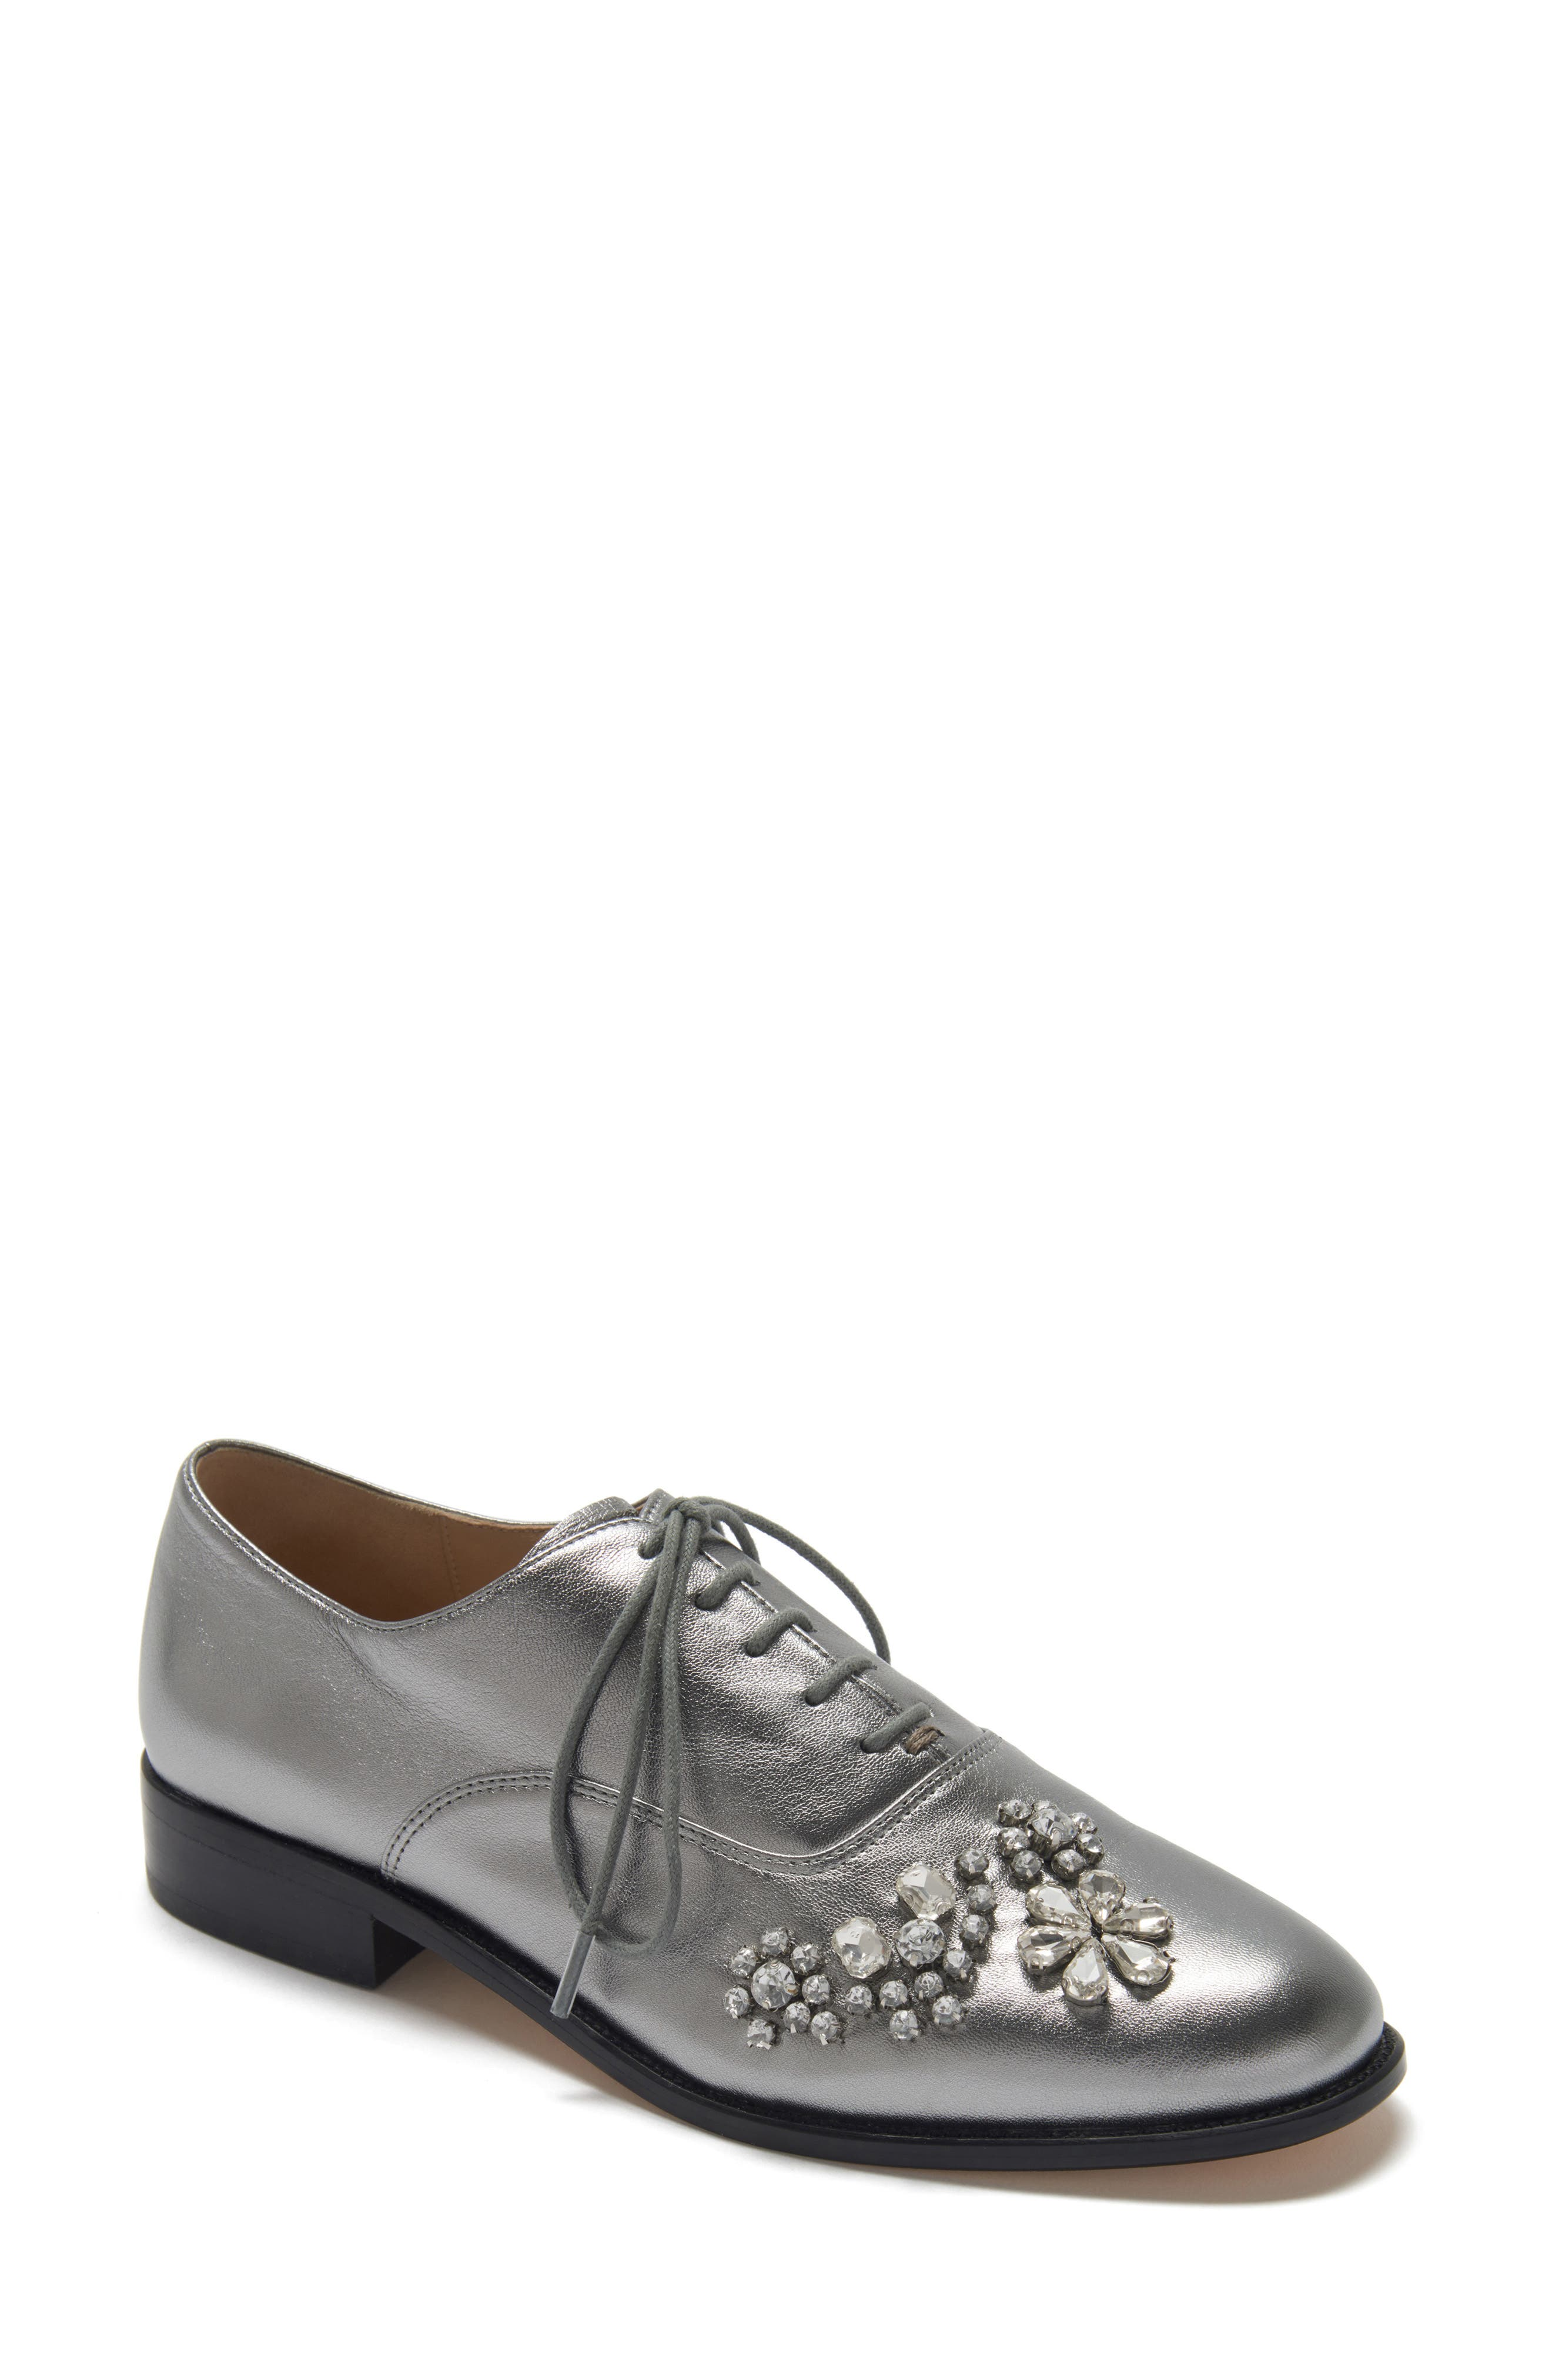 ETIENNE AIGNER Eliza Embellished Oxford in Silver Leather